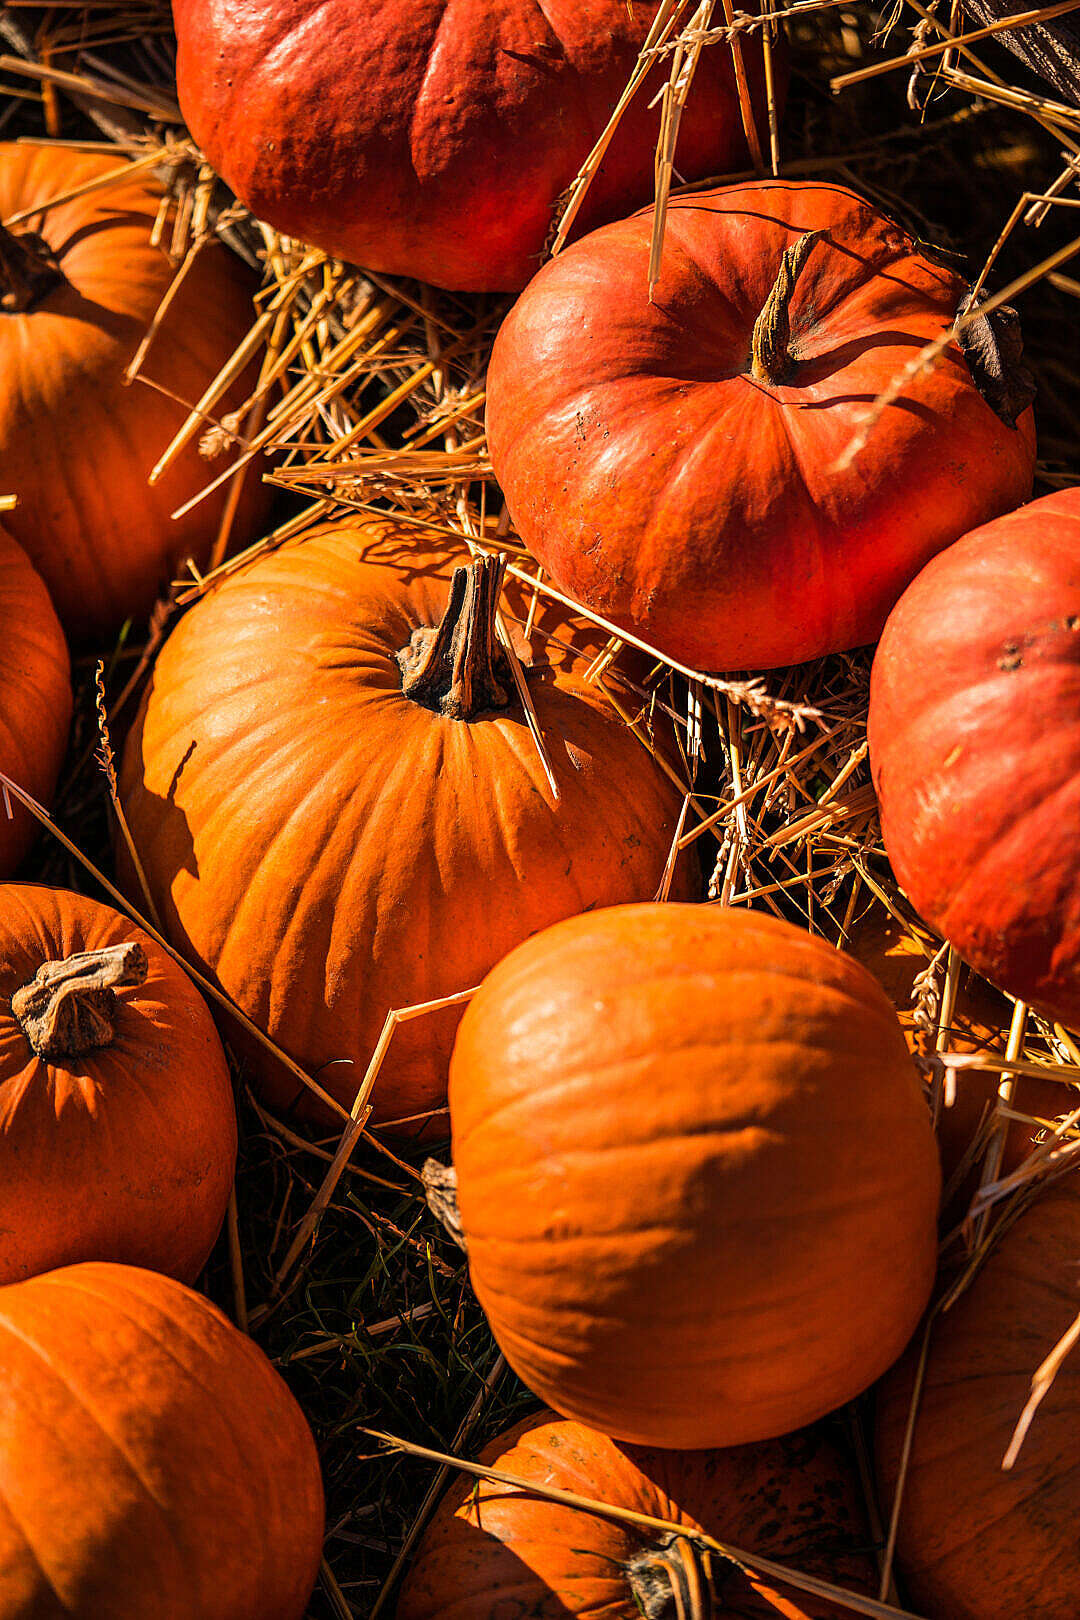 Download Pumpkins on The Straw FREE Stock Photo